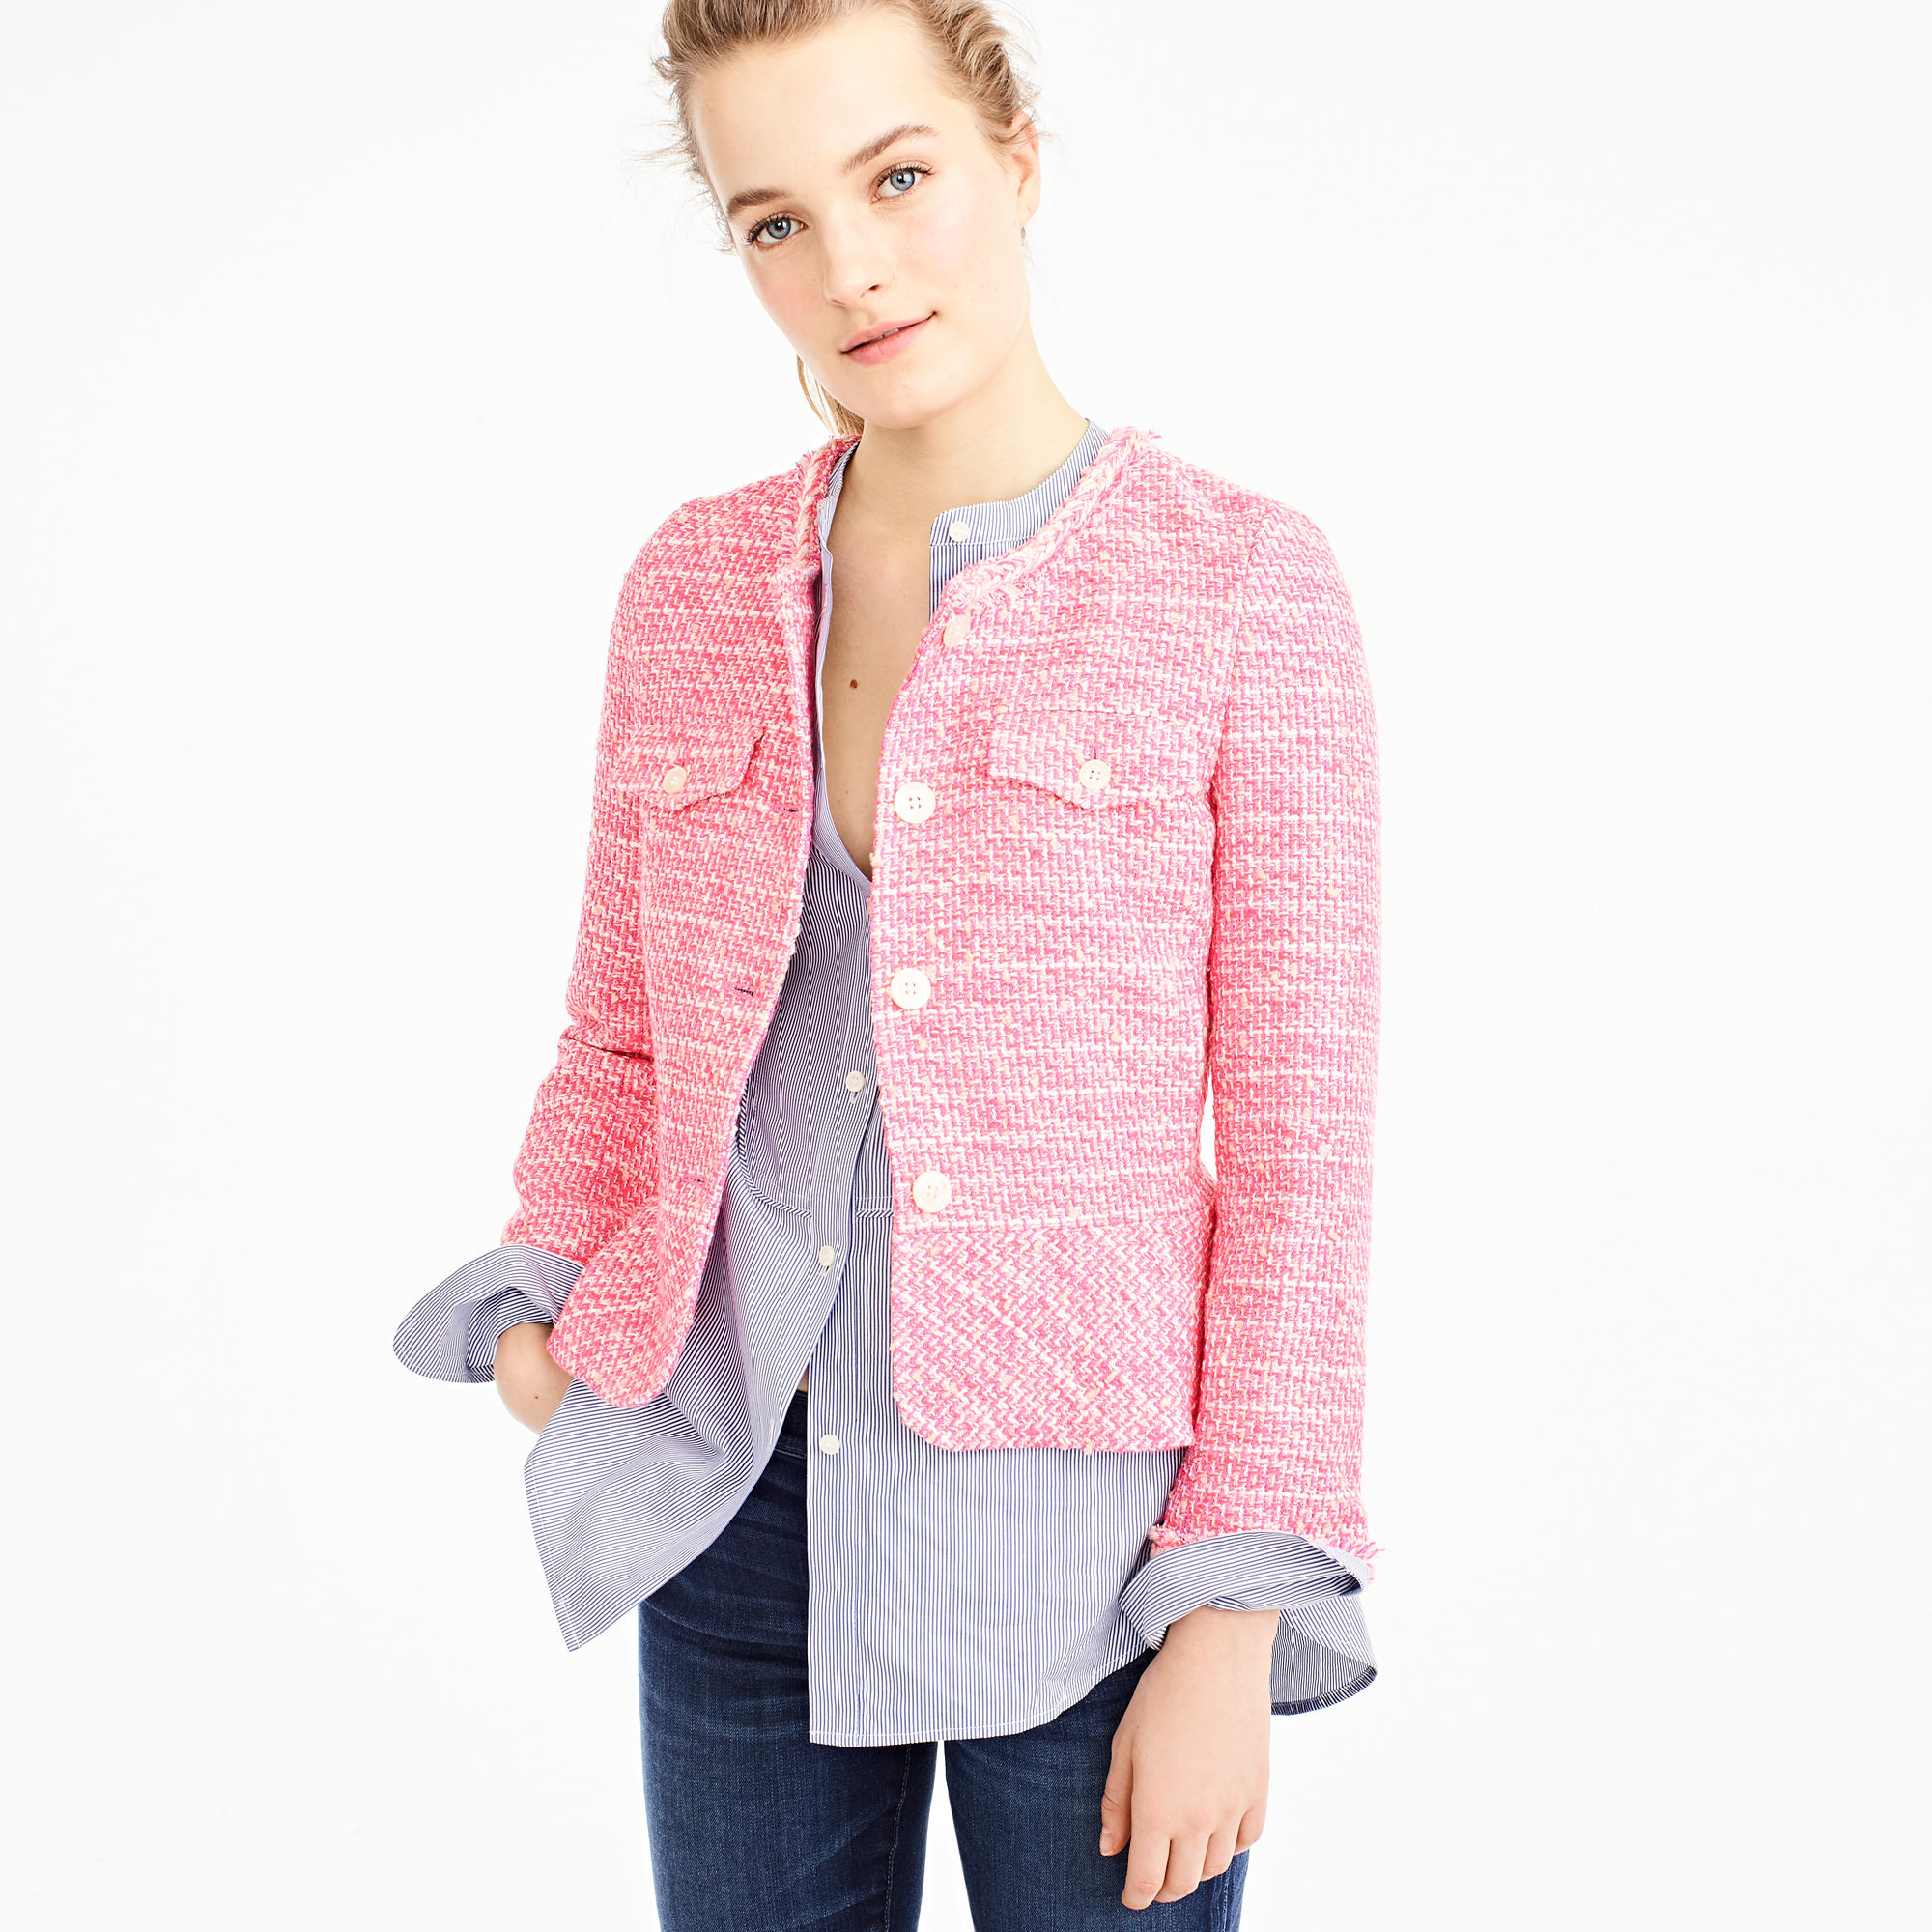 Neon pink lady jacket from J.Crew